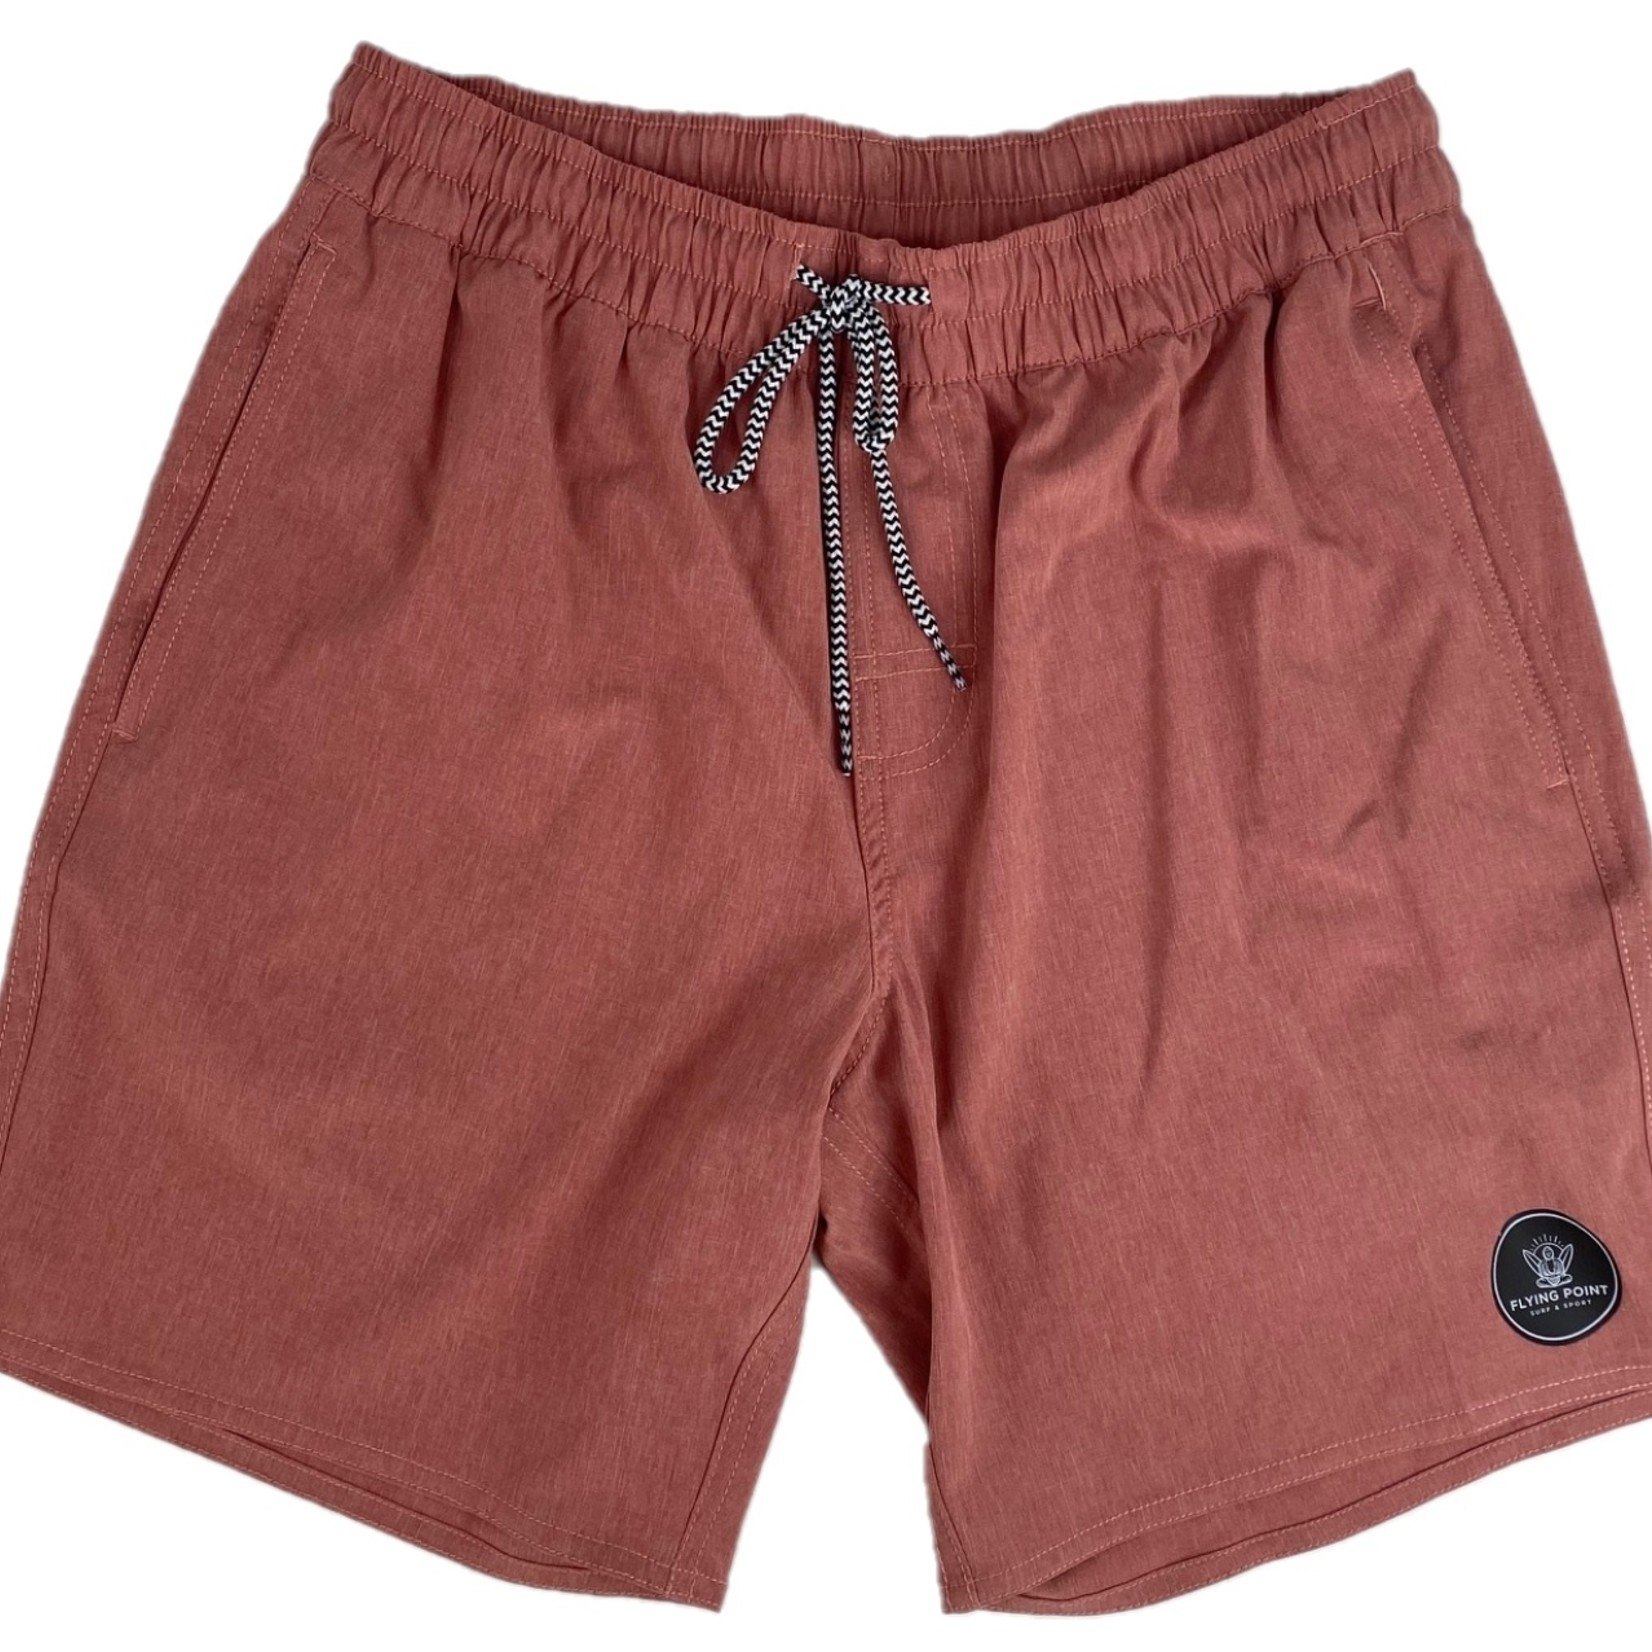 Flying Point Ace Gym Shorts